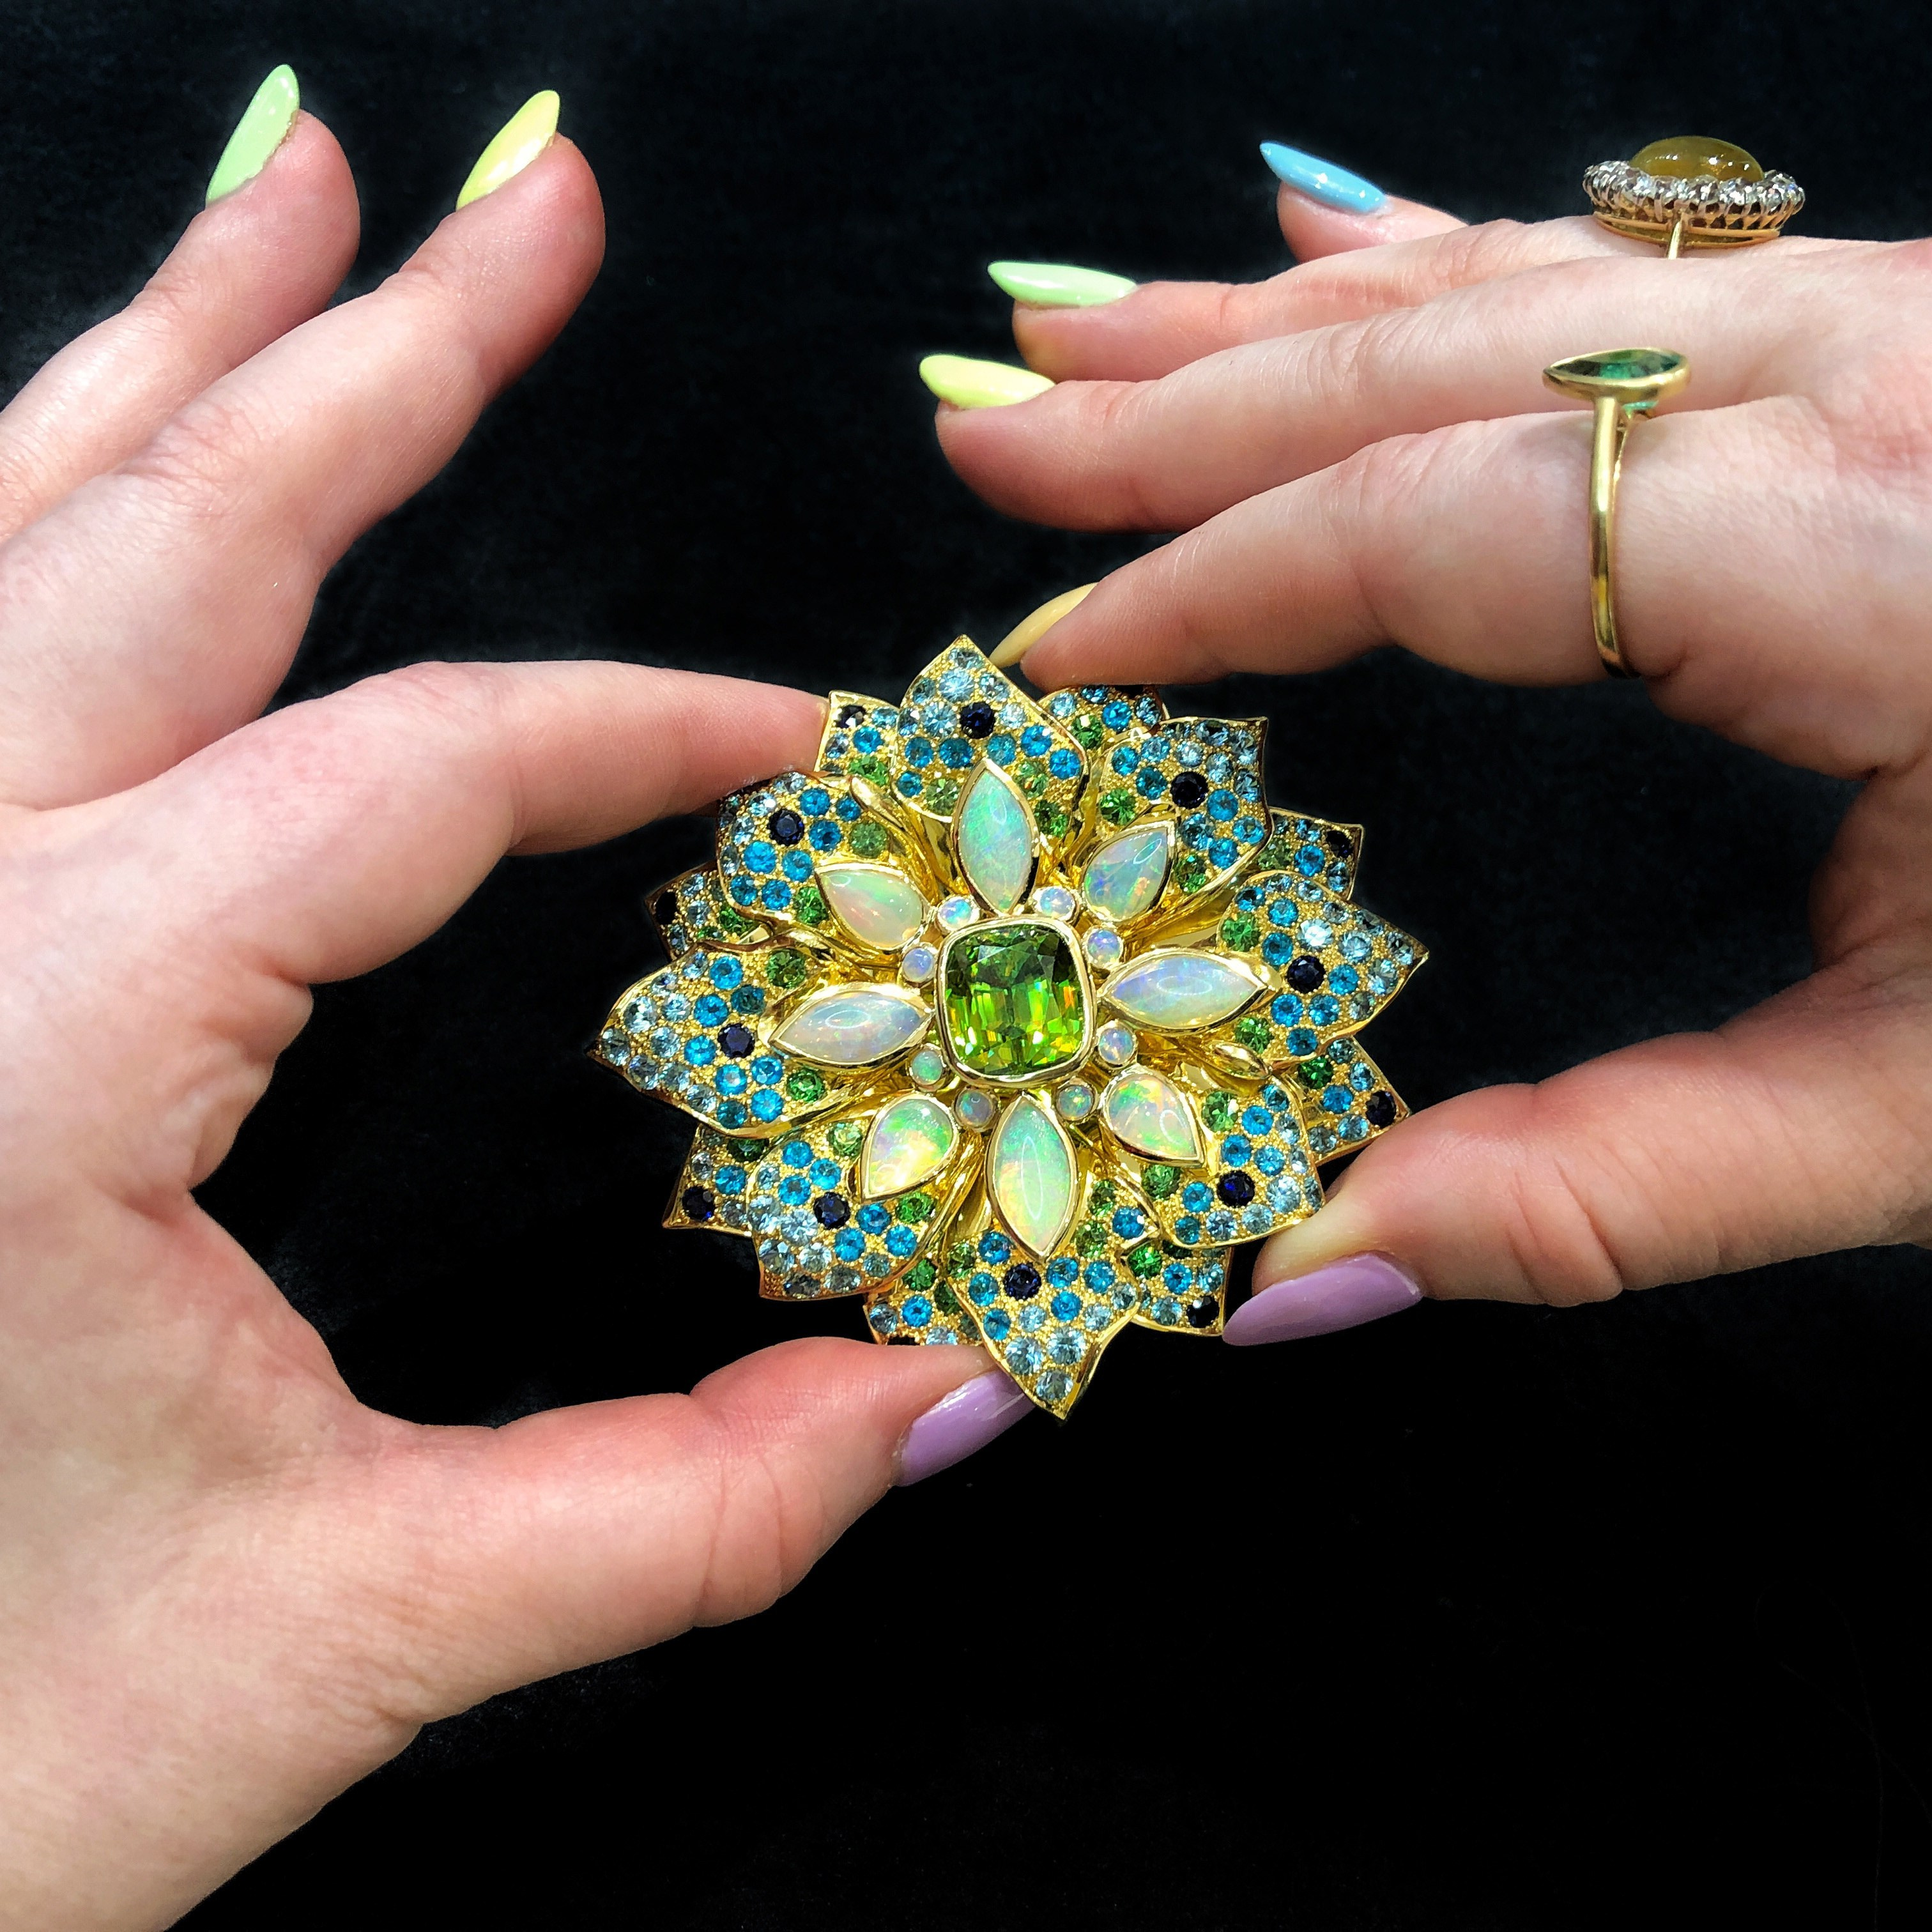 This Paula Crevoshay brooch is inspired by the sea anemone and features sphene, opal, blue zircon, sapphires, tsavorite, and apatite.